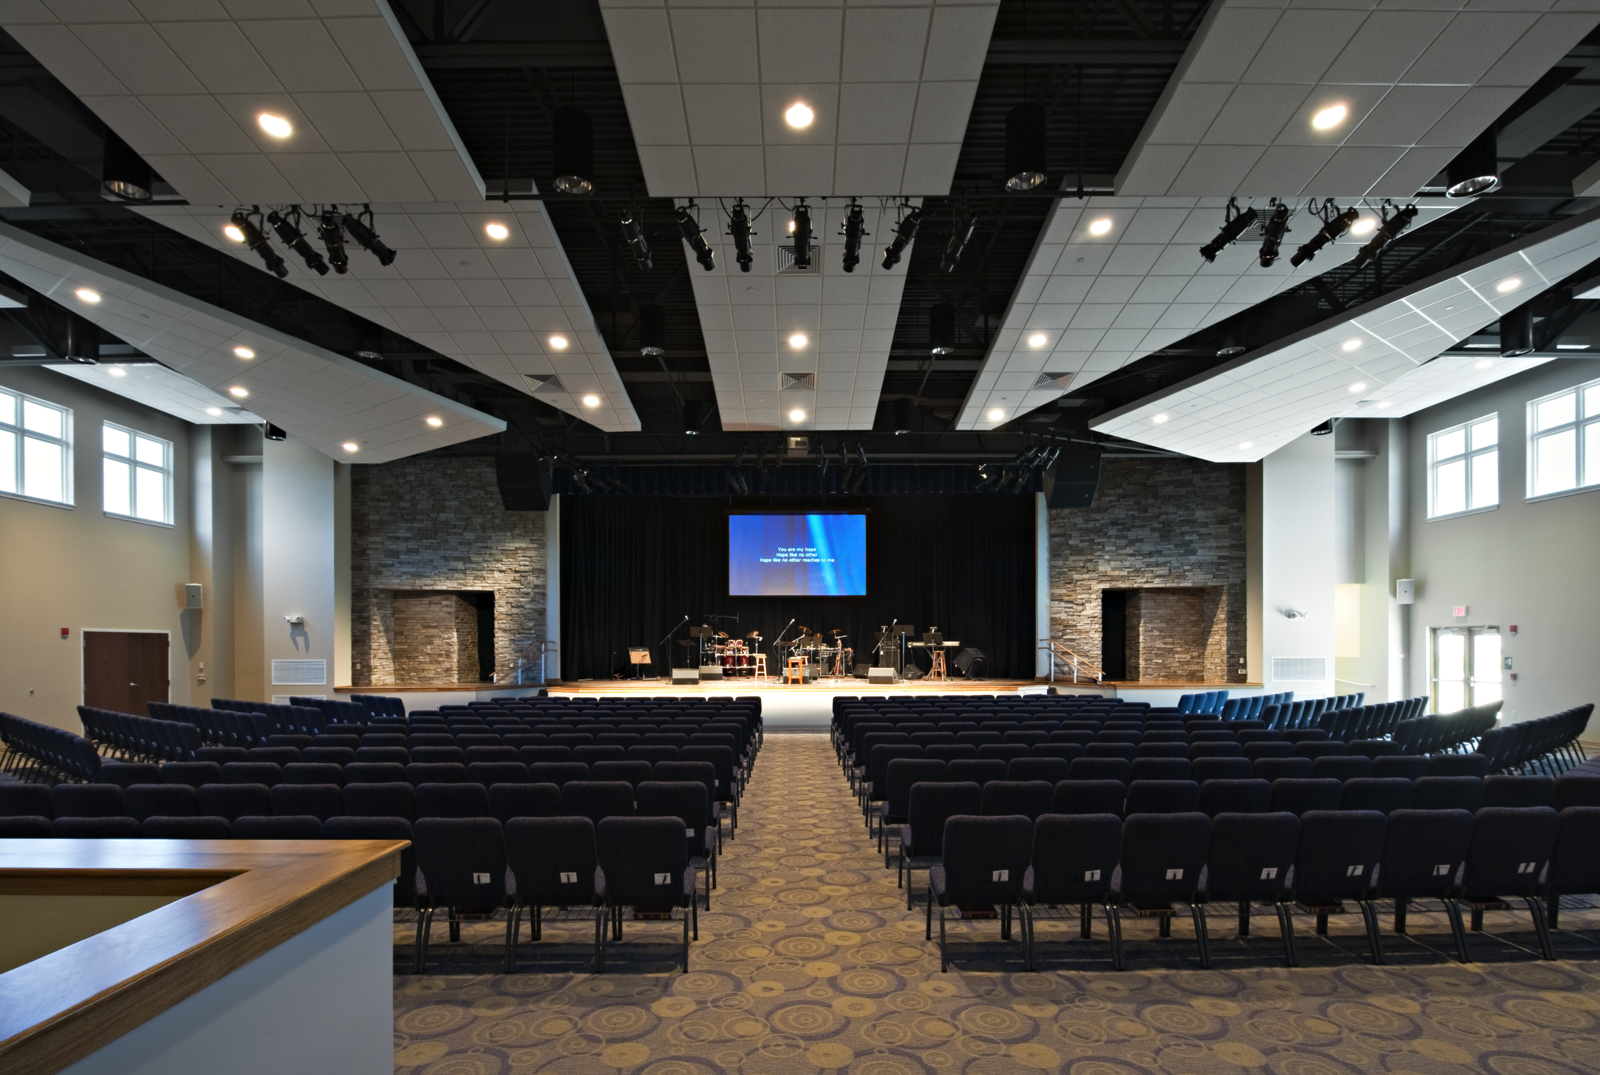 another expandable auditorium designed forWillowdale chapel inkennett square, pa initially seatedup to 500 on the floor. the internal / amphitheater expansion increased capacity to 800 while preserving an intimate feeling for the congregation.